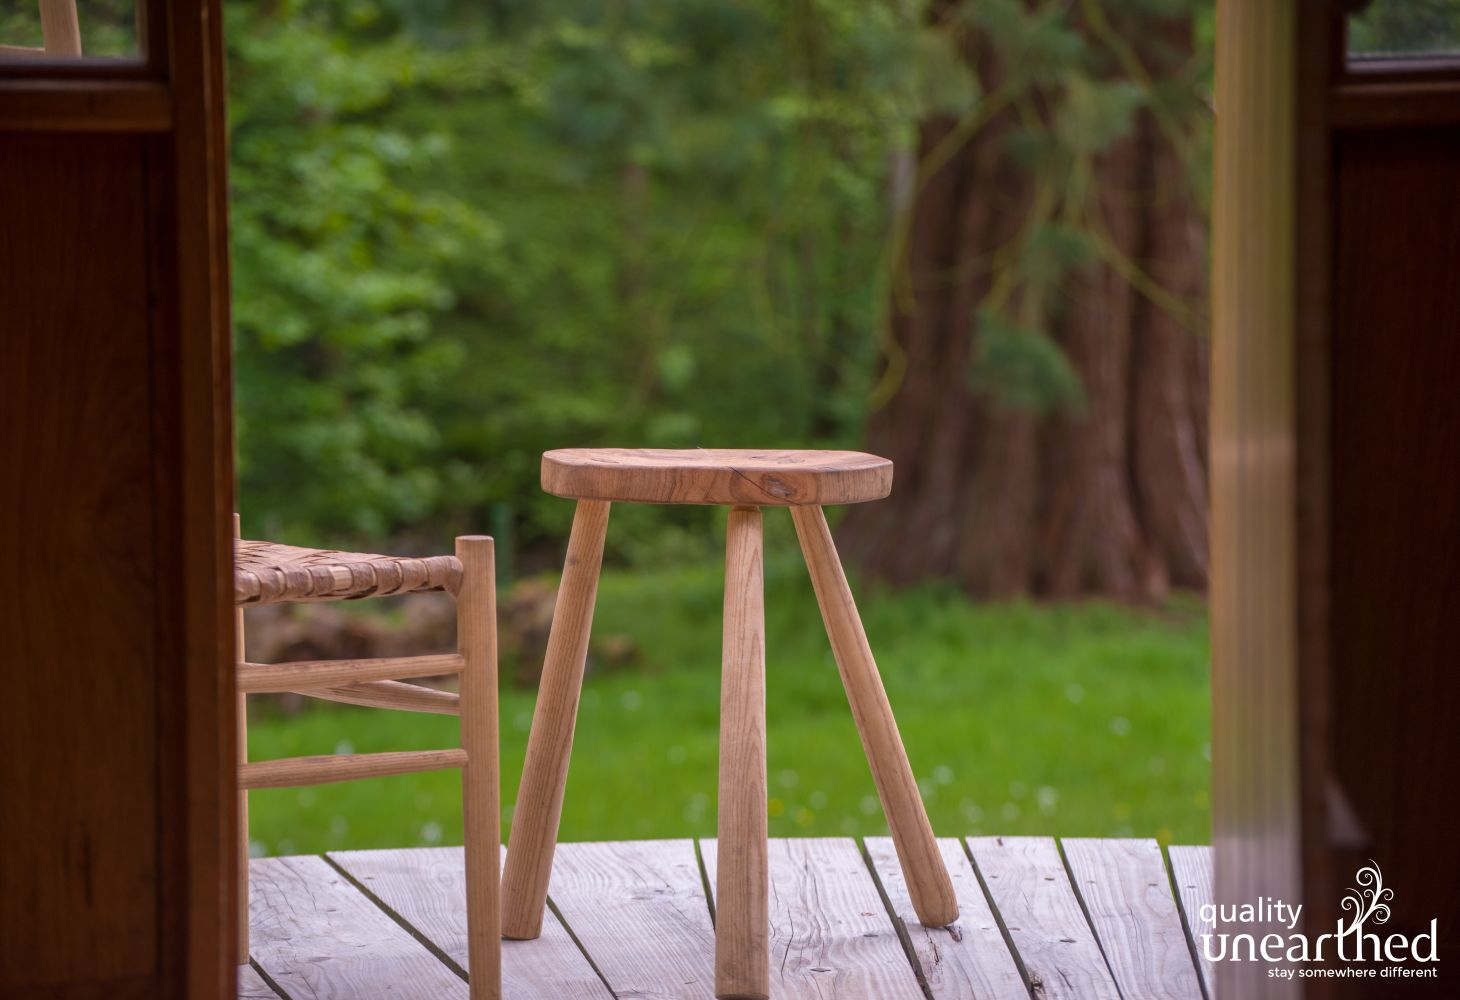 One of the amazing handmade stools your family gathering can learn to make